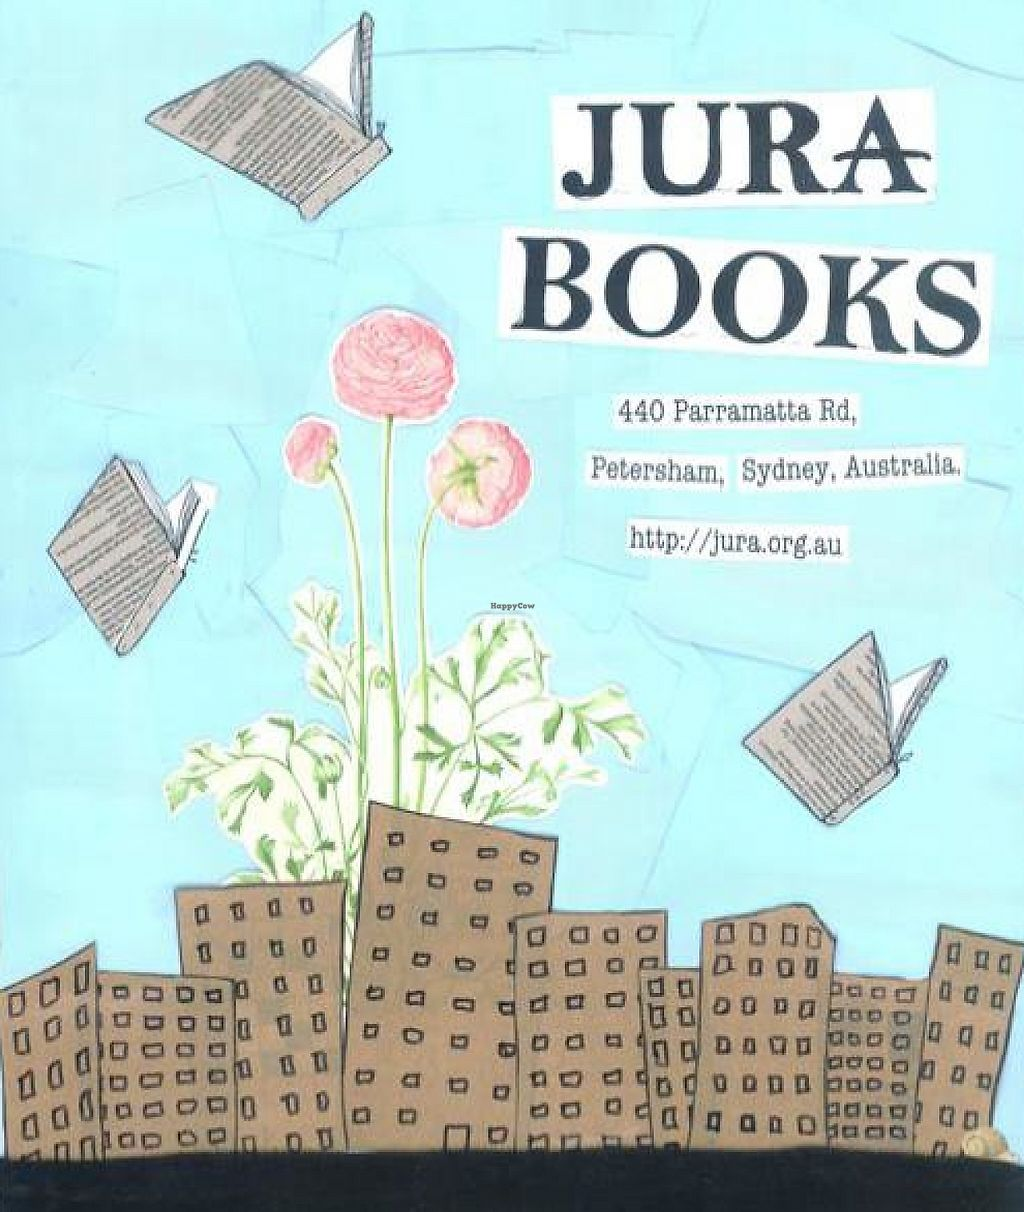 """Photo of Jura Books  by <a href=""""/members/profile/anarchistanimal"""">anarchistanimal</a> <br/>Poster for Jura Books <br/> September 26, 2013  - <a href='/contact/abuse/image/41937/248055'>Report</a>"""